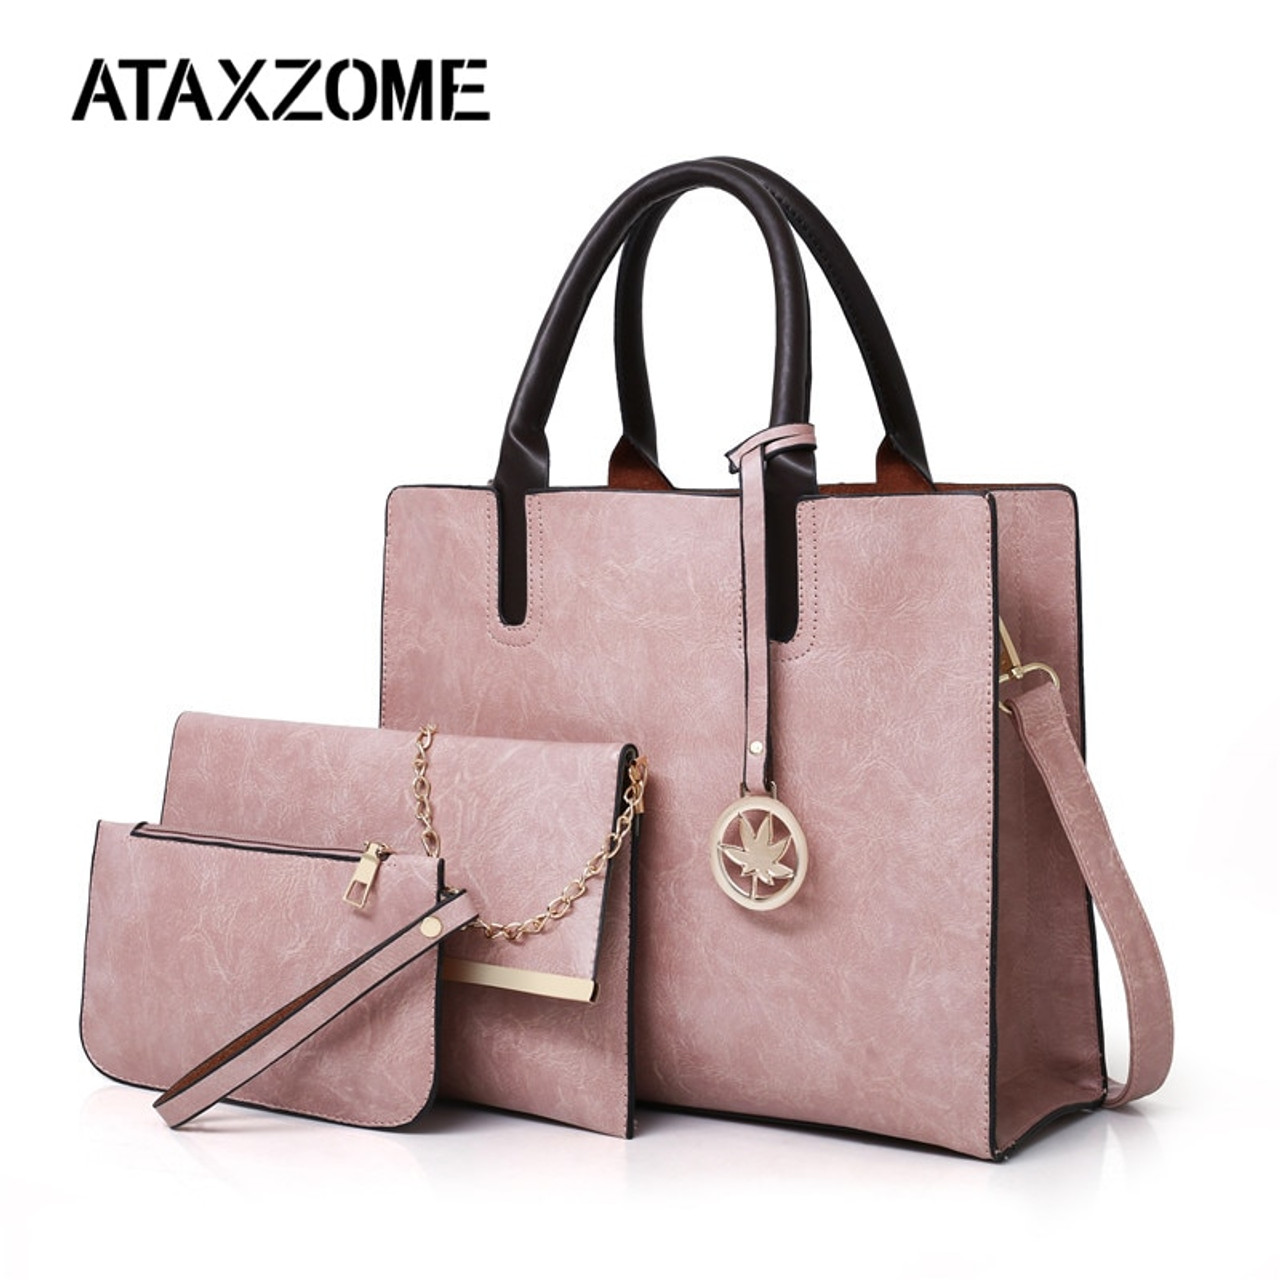 43beed2a516d ATAXZOME 3Pcs Set Composite women Tote Shoulder bags Large luxury handbags  designer famous brand PU ...